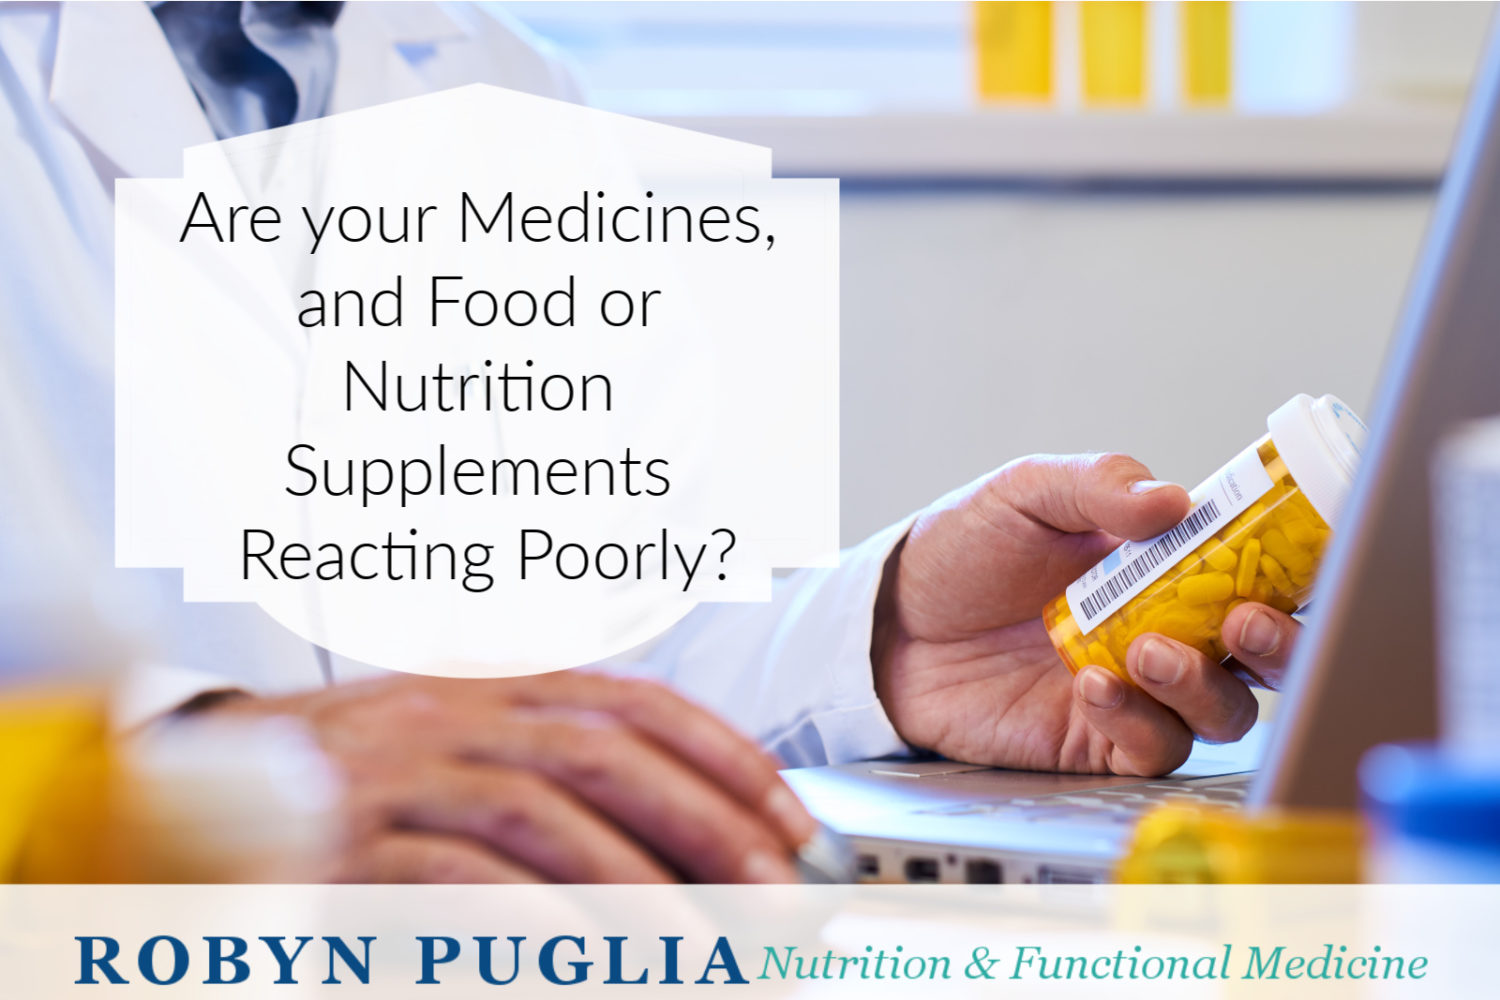 Is Your Medication Reacting Poorly with Your Food?